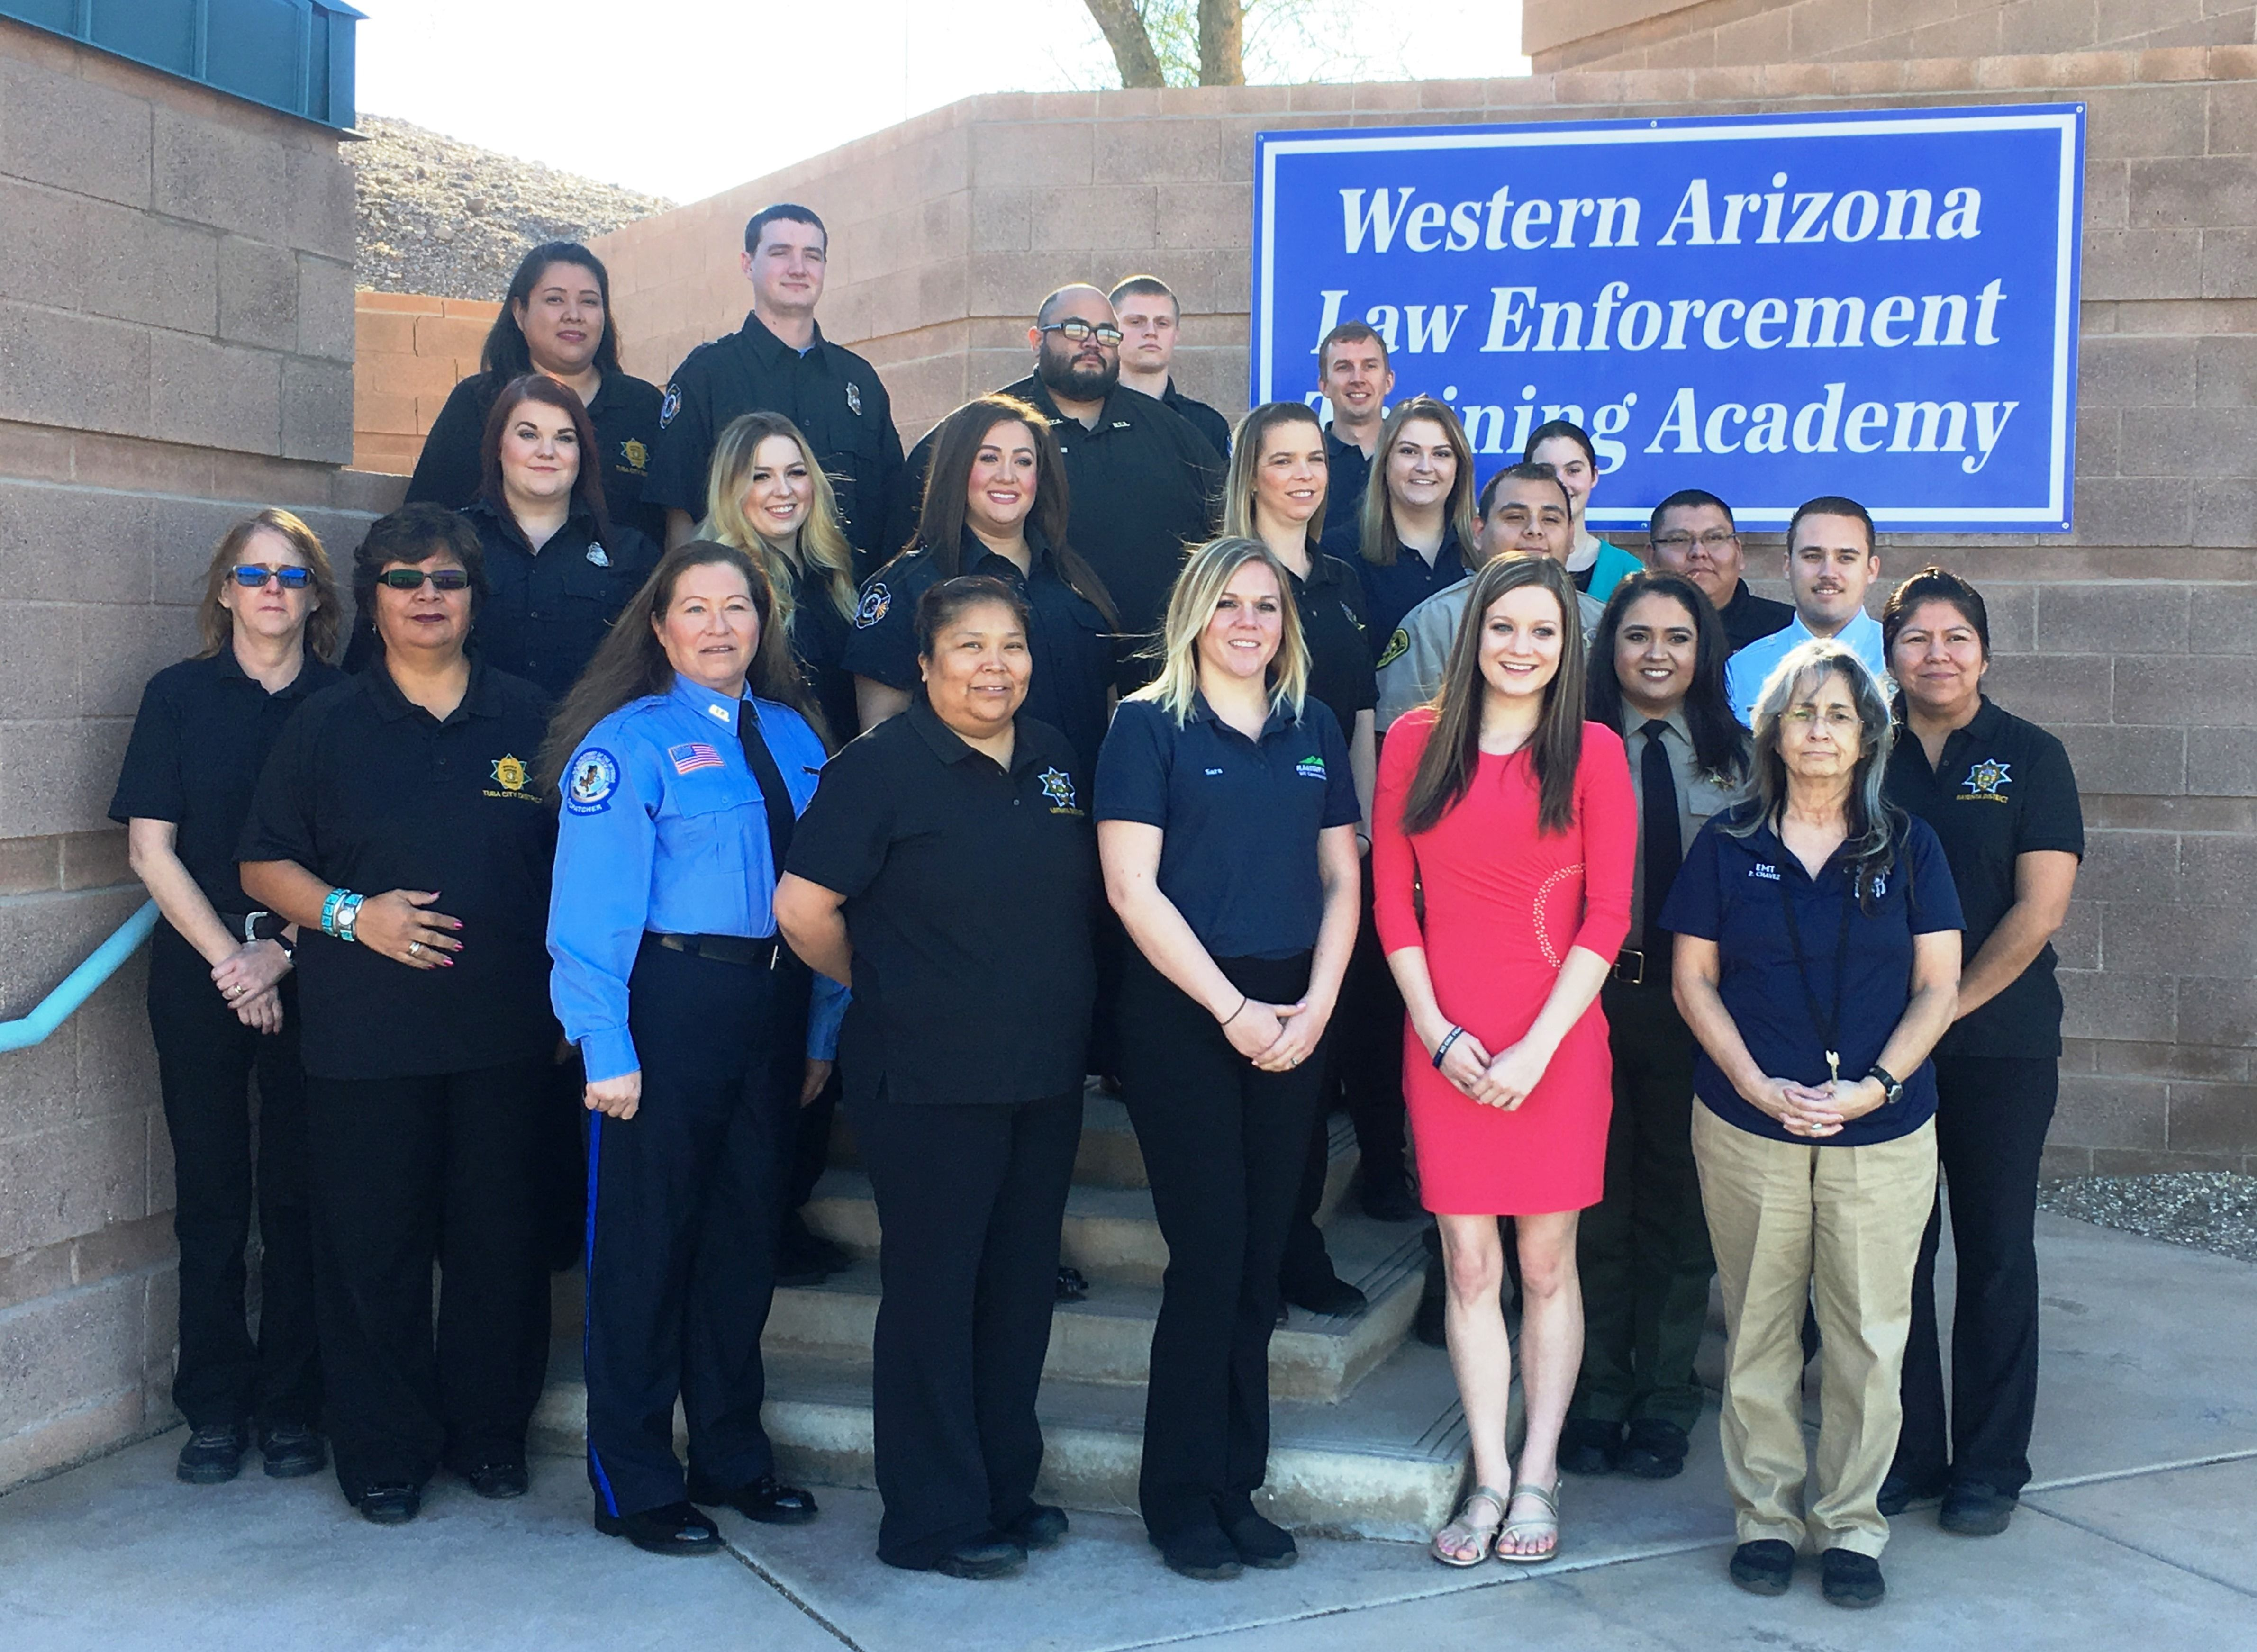 23 public safety dispatchers from az nv graduated from